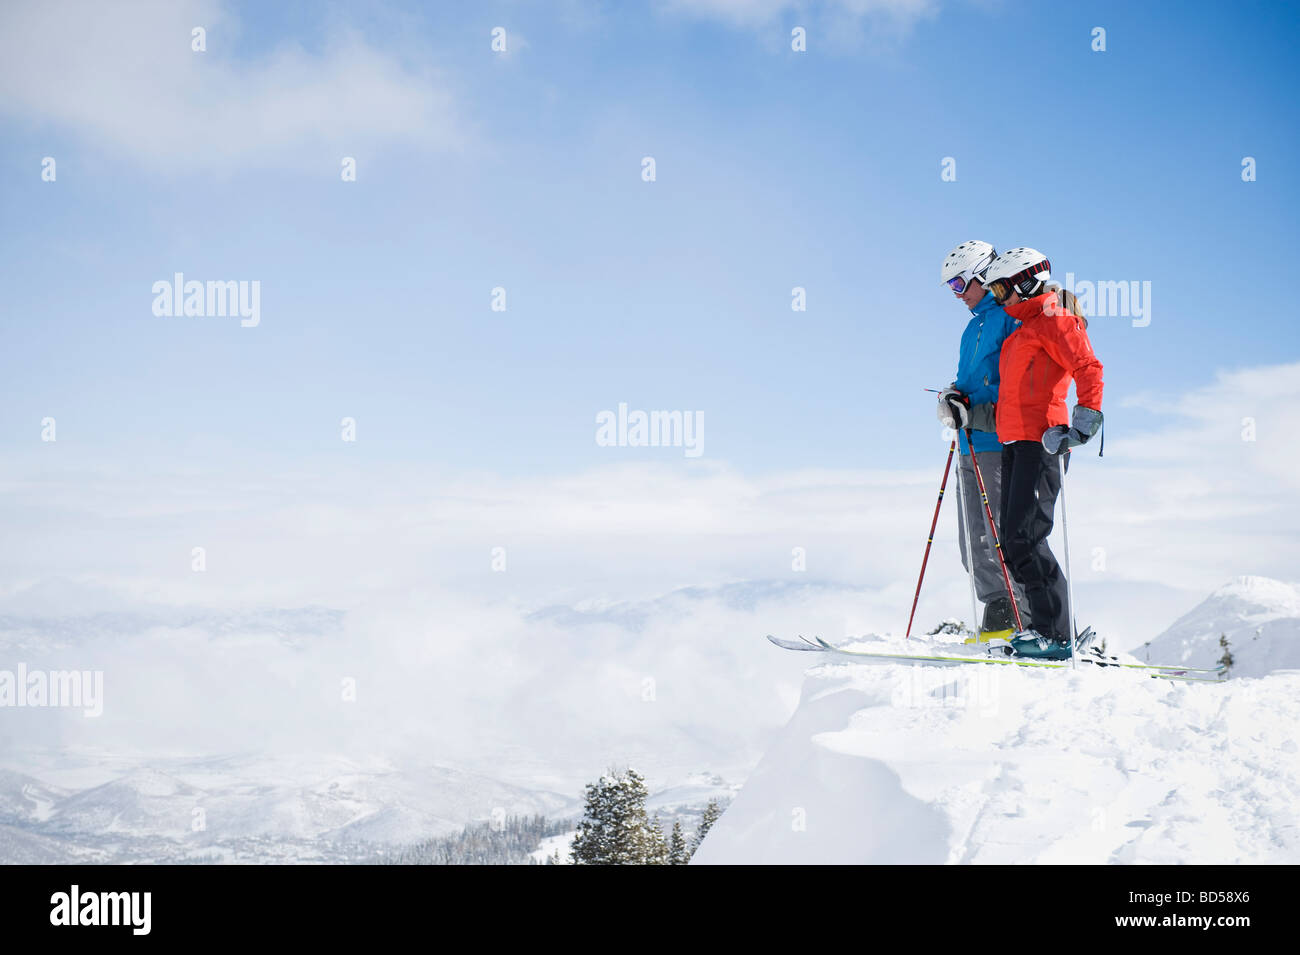 Two downhill skiers - Stock Image